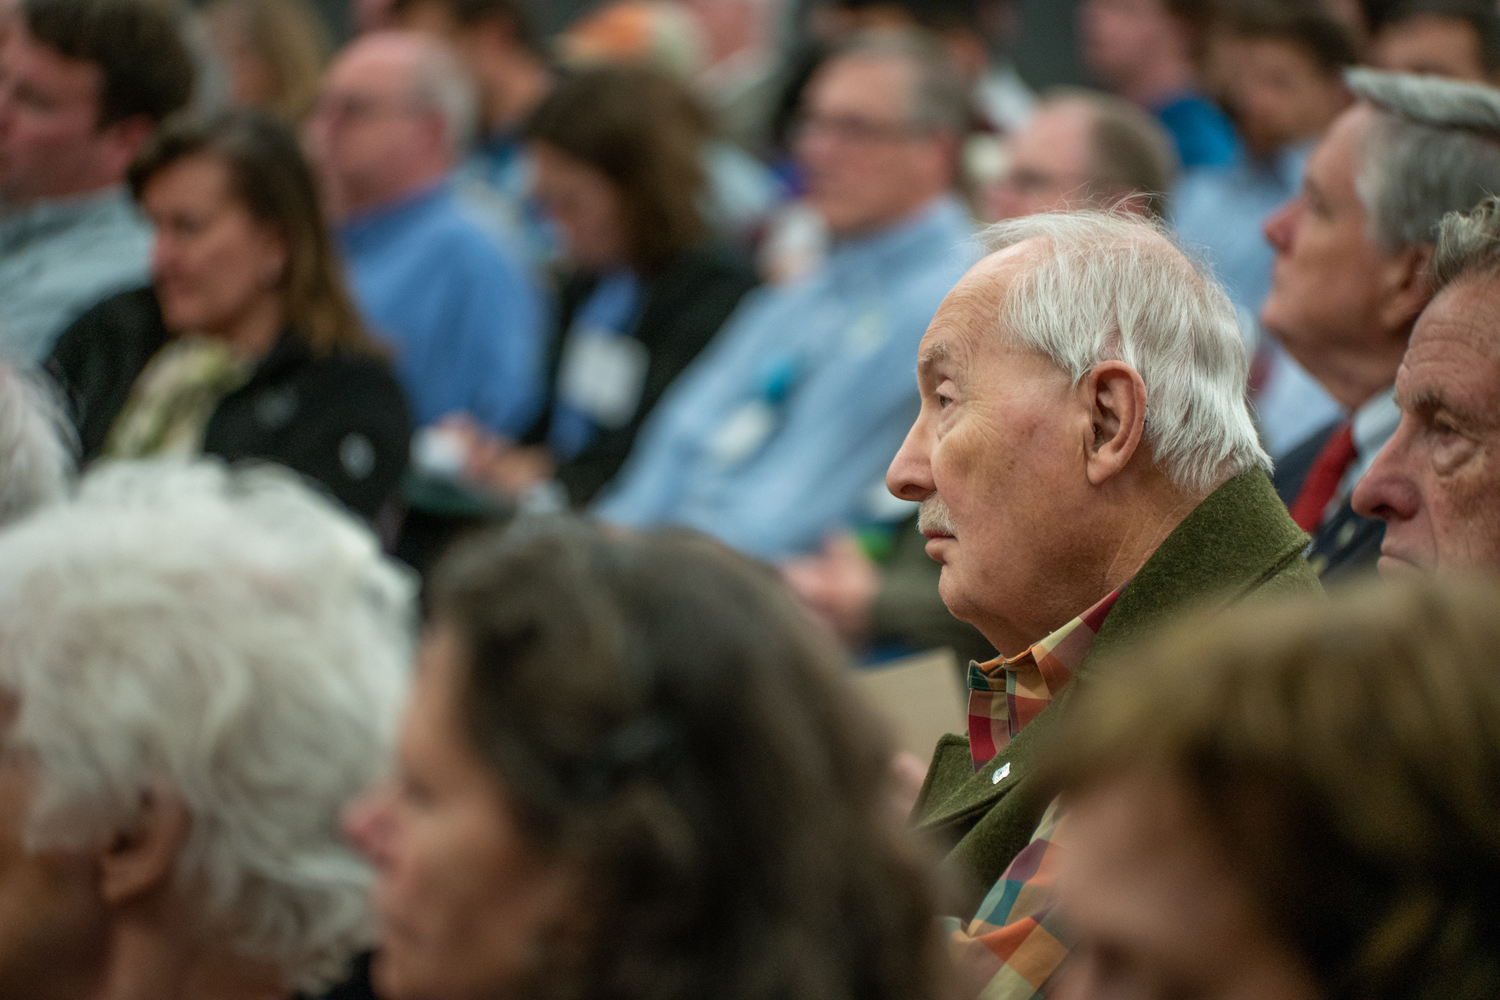 Wasim Muklashy Photography_-SAM_4522_Society of American Foresters National Convention_489.jpg